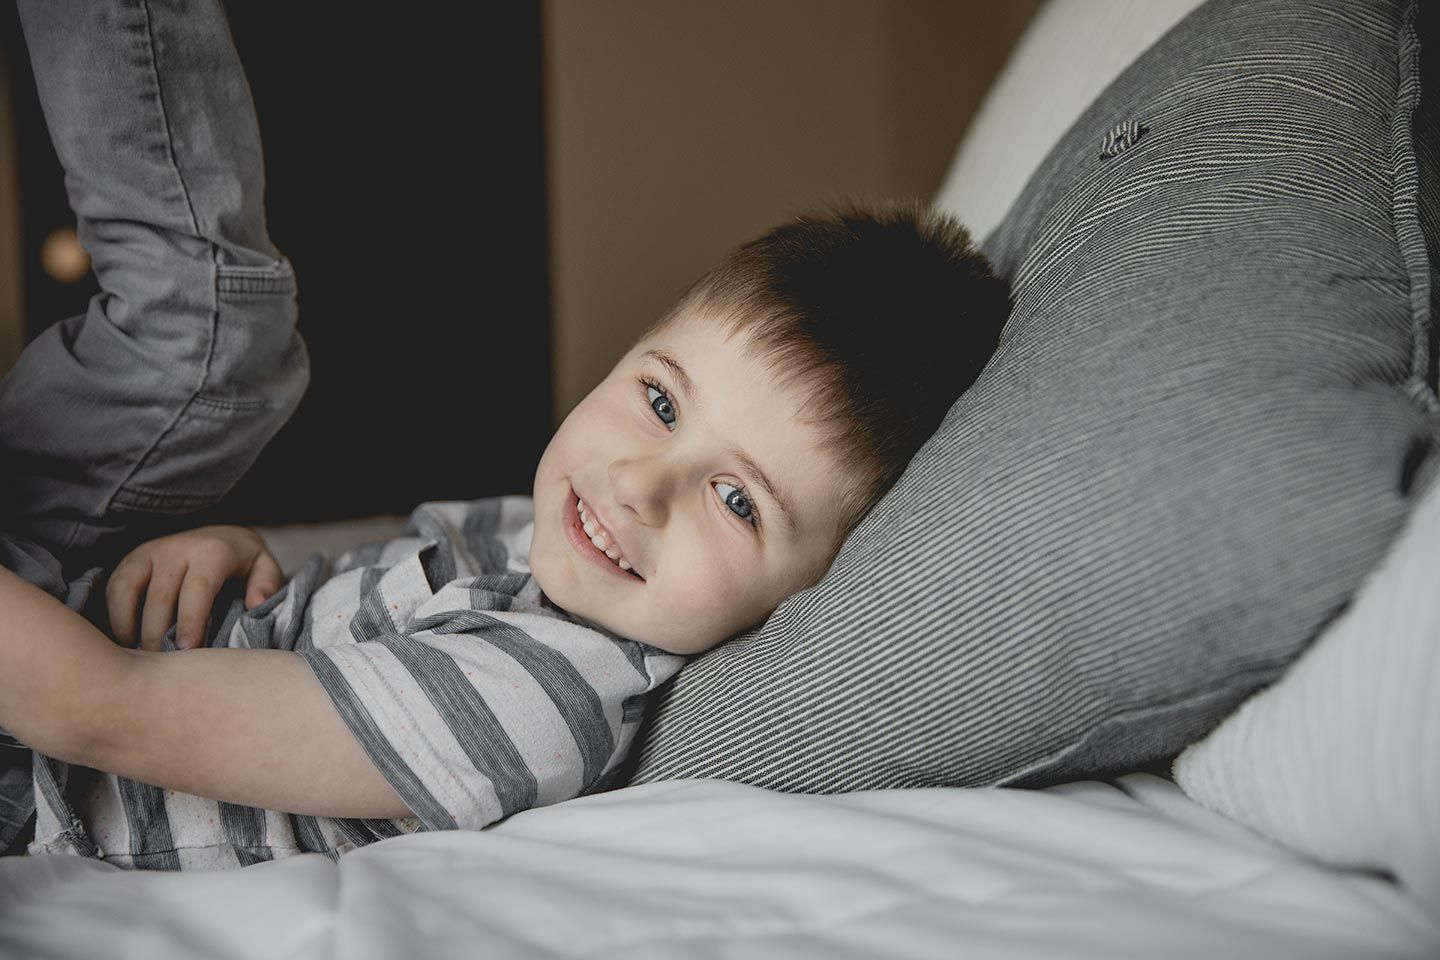 little boy laying on bed smiling